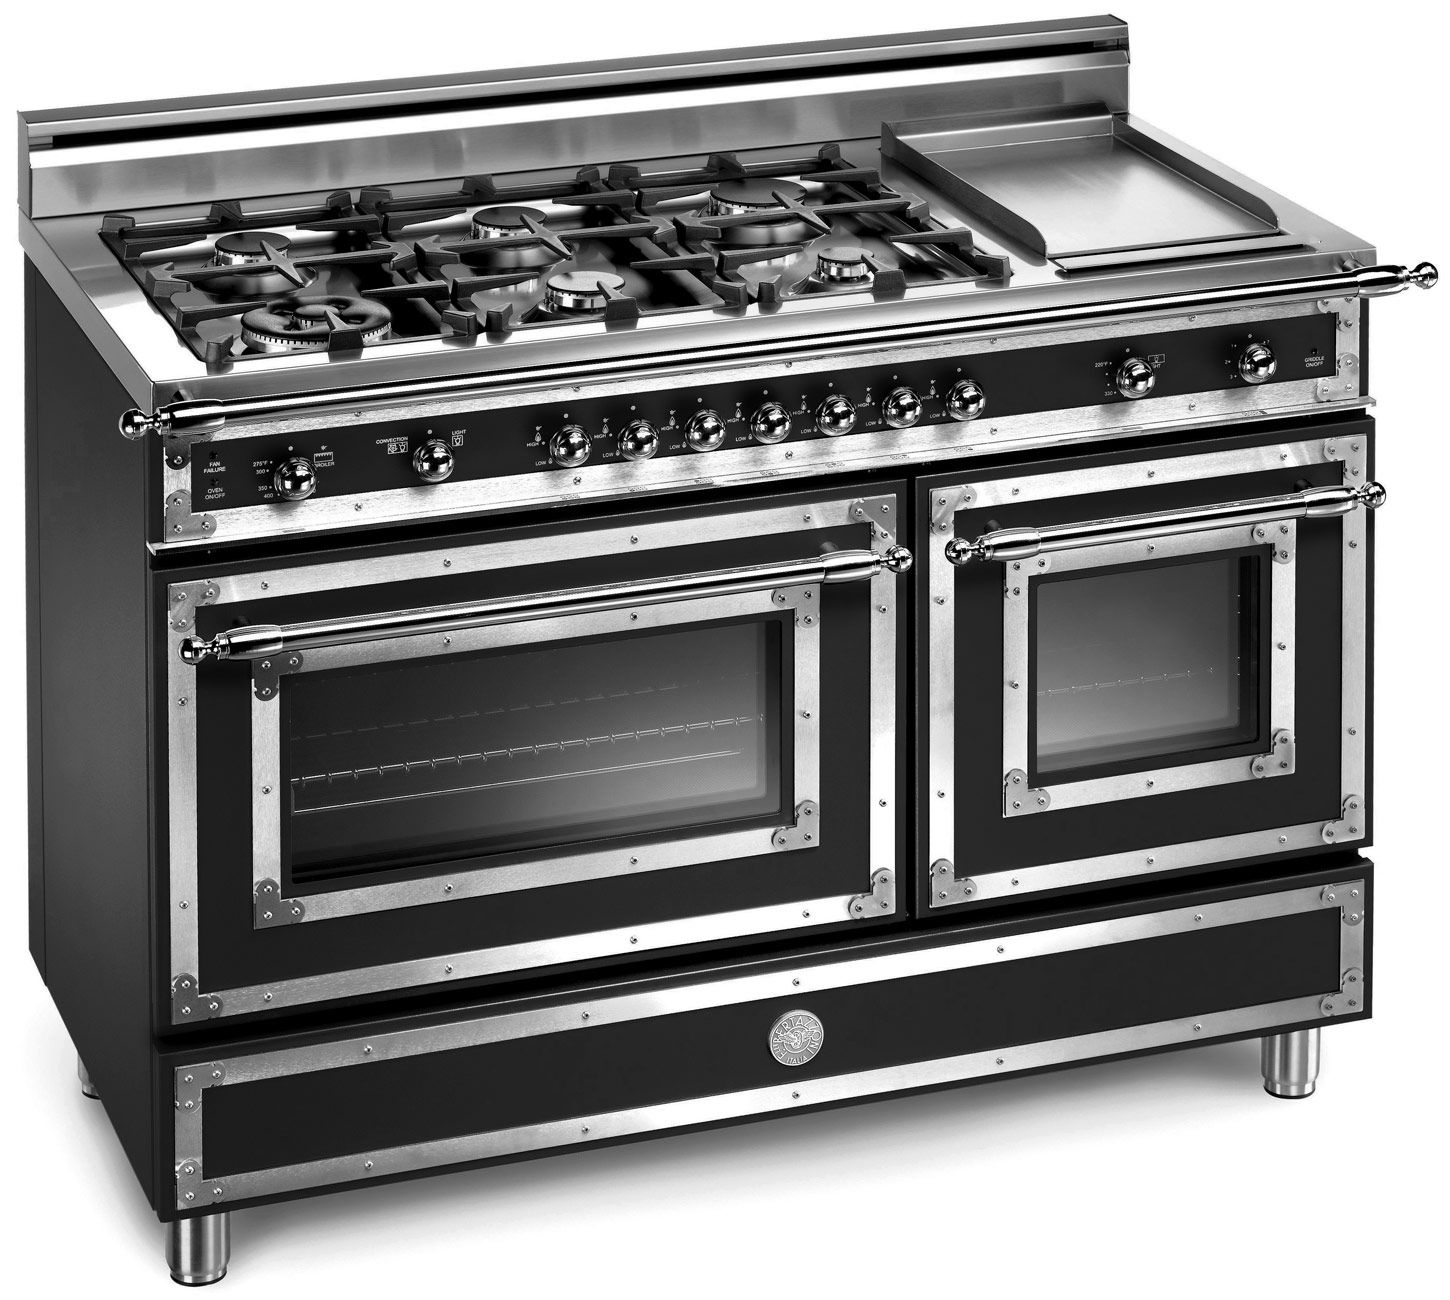 Professional Electric Ranges For The Home 48 6 Burner Gas Range Electric Griddle Bertazzoni Color